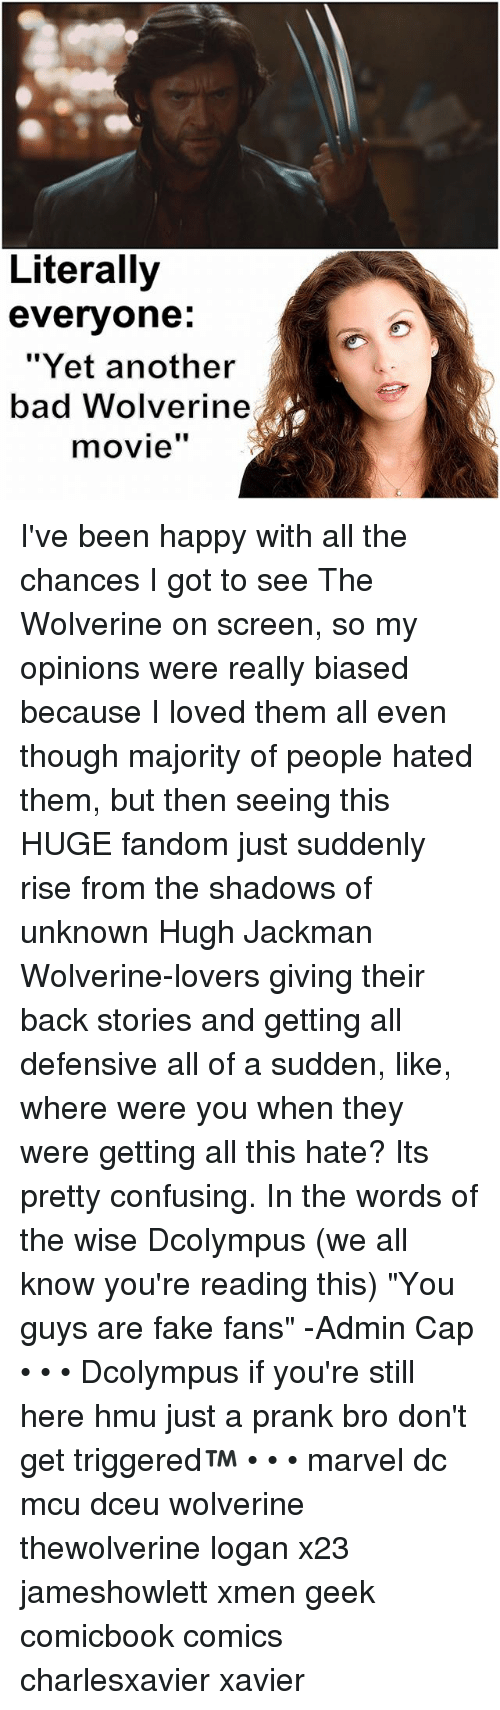 "Memes, 🤖, and Screening: Literally  everyone  ""Yet another  bad Wolverine  movie'' I've been happy with all the chances I got to see The Wolverine on screen, so my opinions were really biased because I loved them all even though majority of people hated them, but then seeing this HUGE fandom just suddenly rise from the shadows of unknown Hugh Jackman Wolverine-lovers giving their back stories and getting all defensive all of a sudden, like, where were you when they were getting all this hate? Its pretty confusing. In the words of the wise Dcolympus (we all know you're reading this) ""You guys are fake fans"" -Admin Cap • • • Dcolympus if you're still here hmu just a prank bro don't get triggered™ • • • marvel dc mcu dceu wolverine thewolverine logan x23 jameshowlett xmen geek comicbook comics charlesxavier xavier"